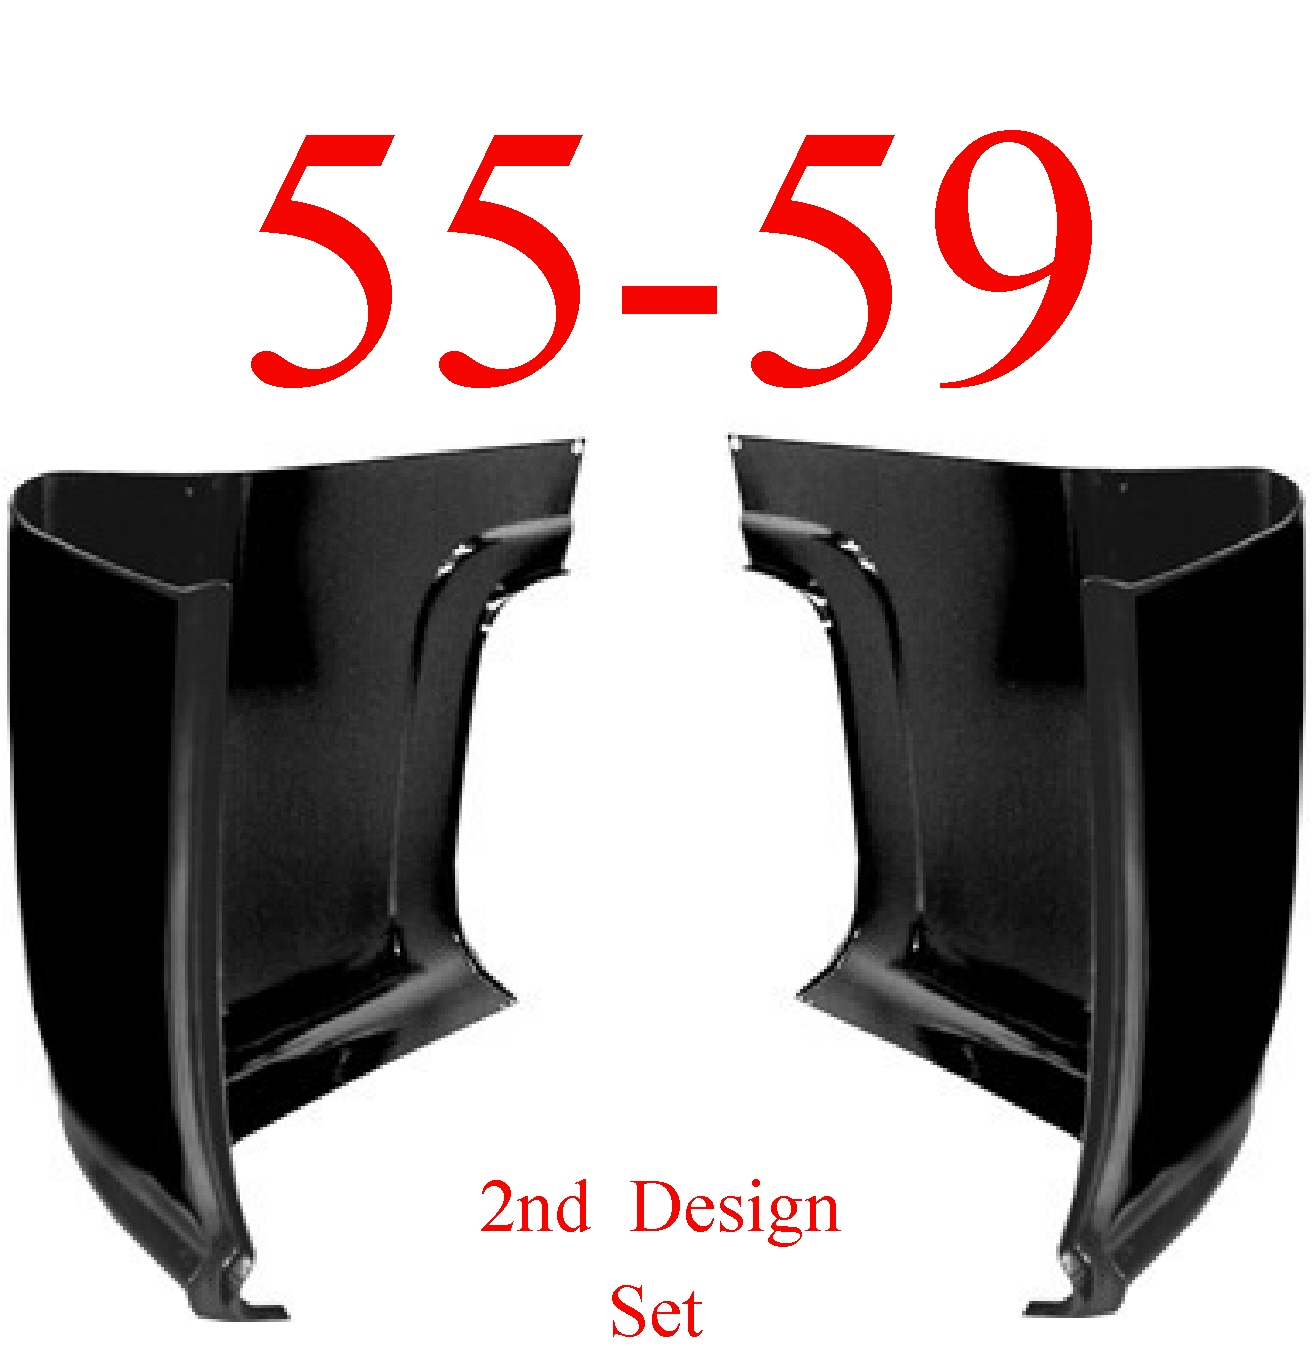 55-59 Chevy GMC Cab Corner Set, 2nd Design